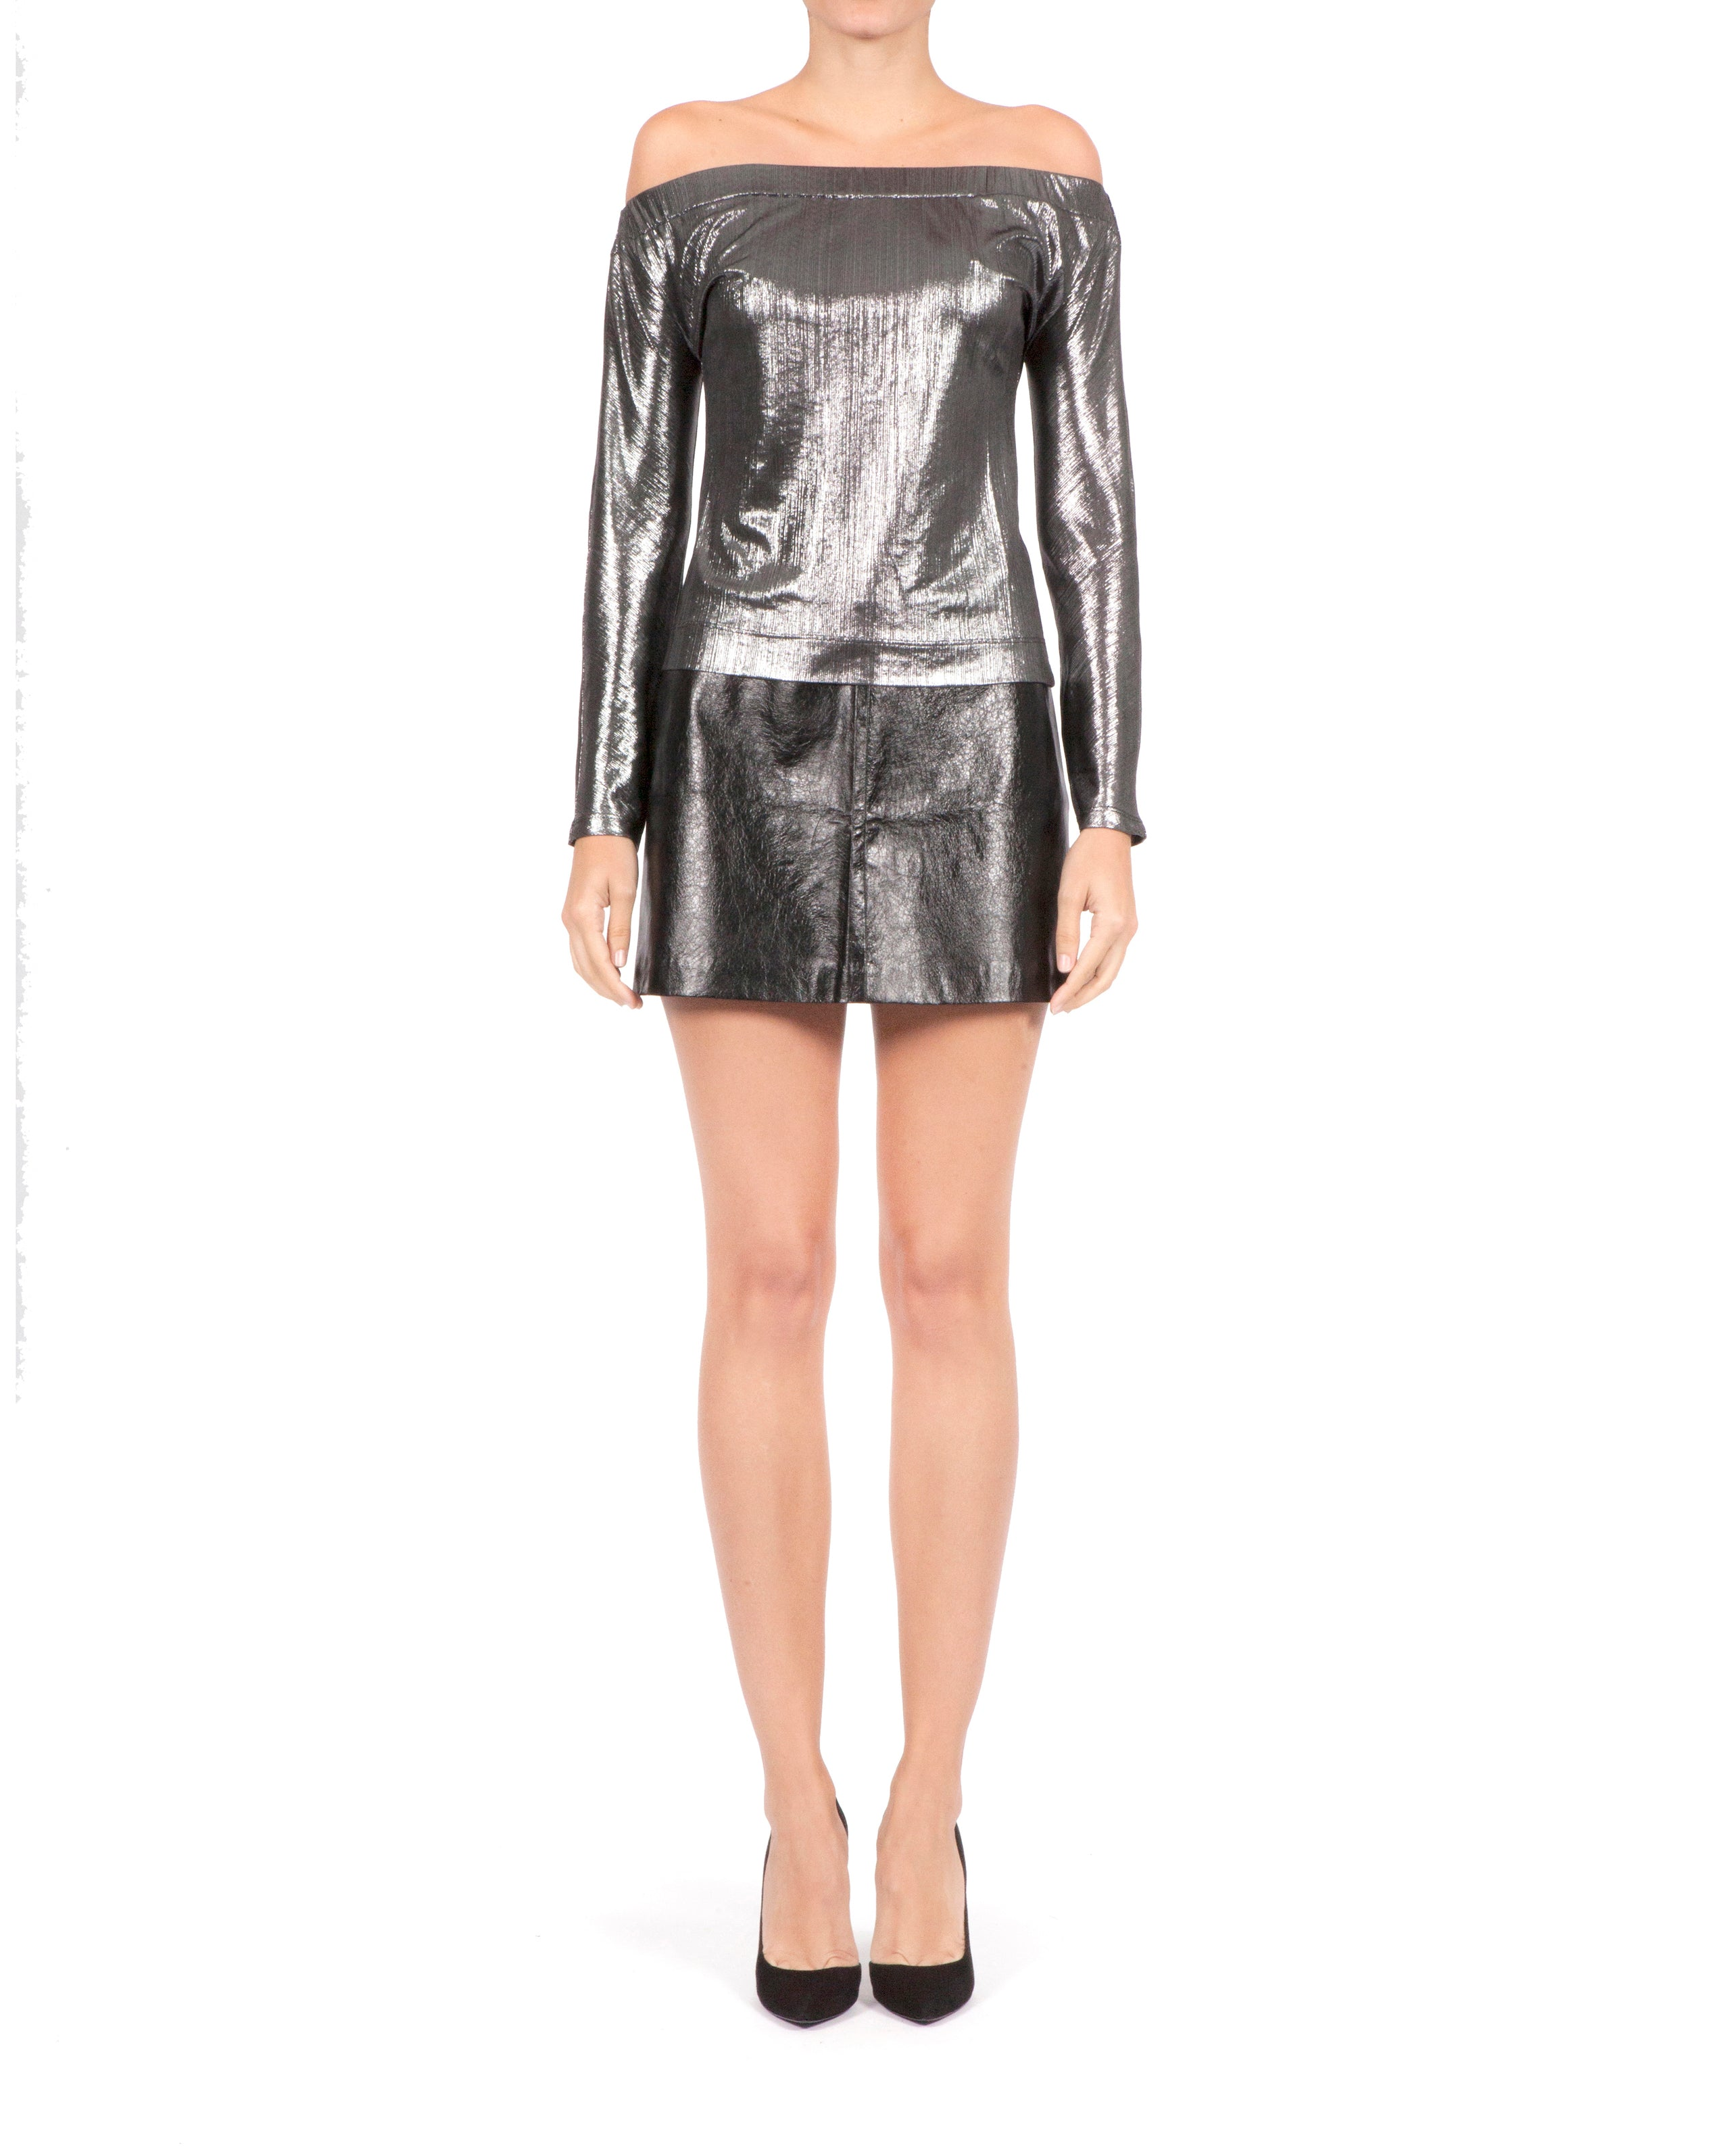 Toni Leather Mini Skirt - Black